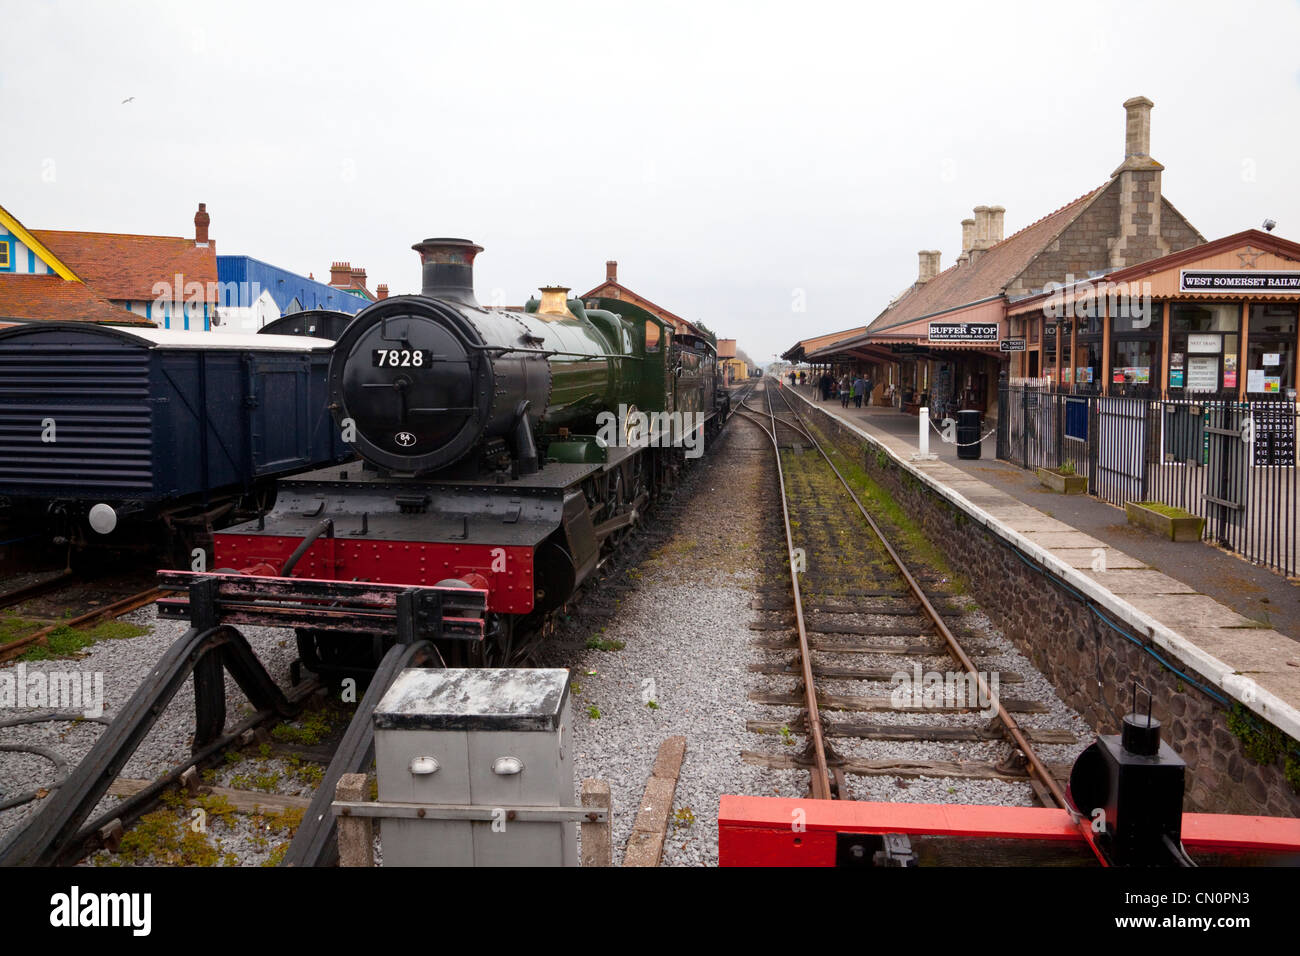 West Somerset Railway, Minehead, Station Track & Locomotives Stock Photo